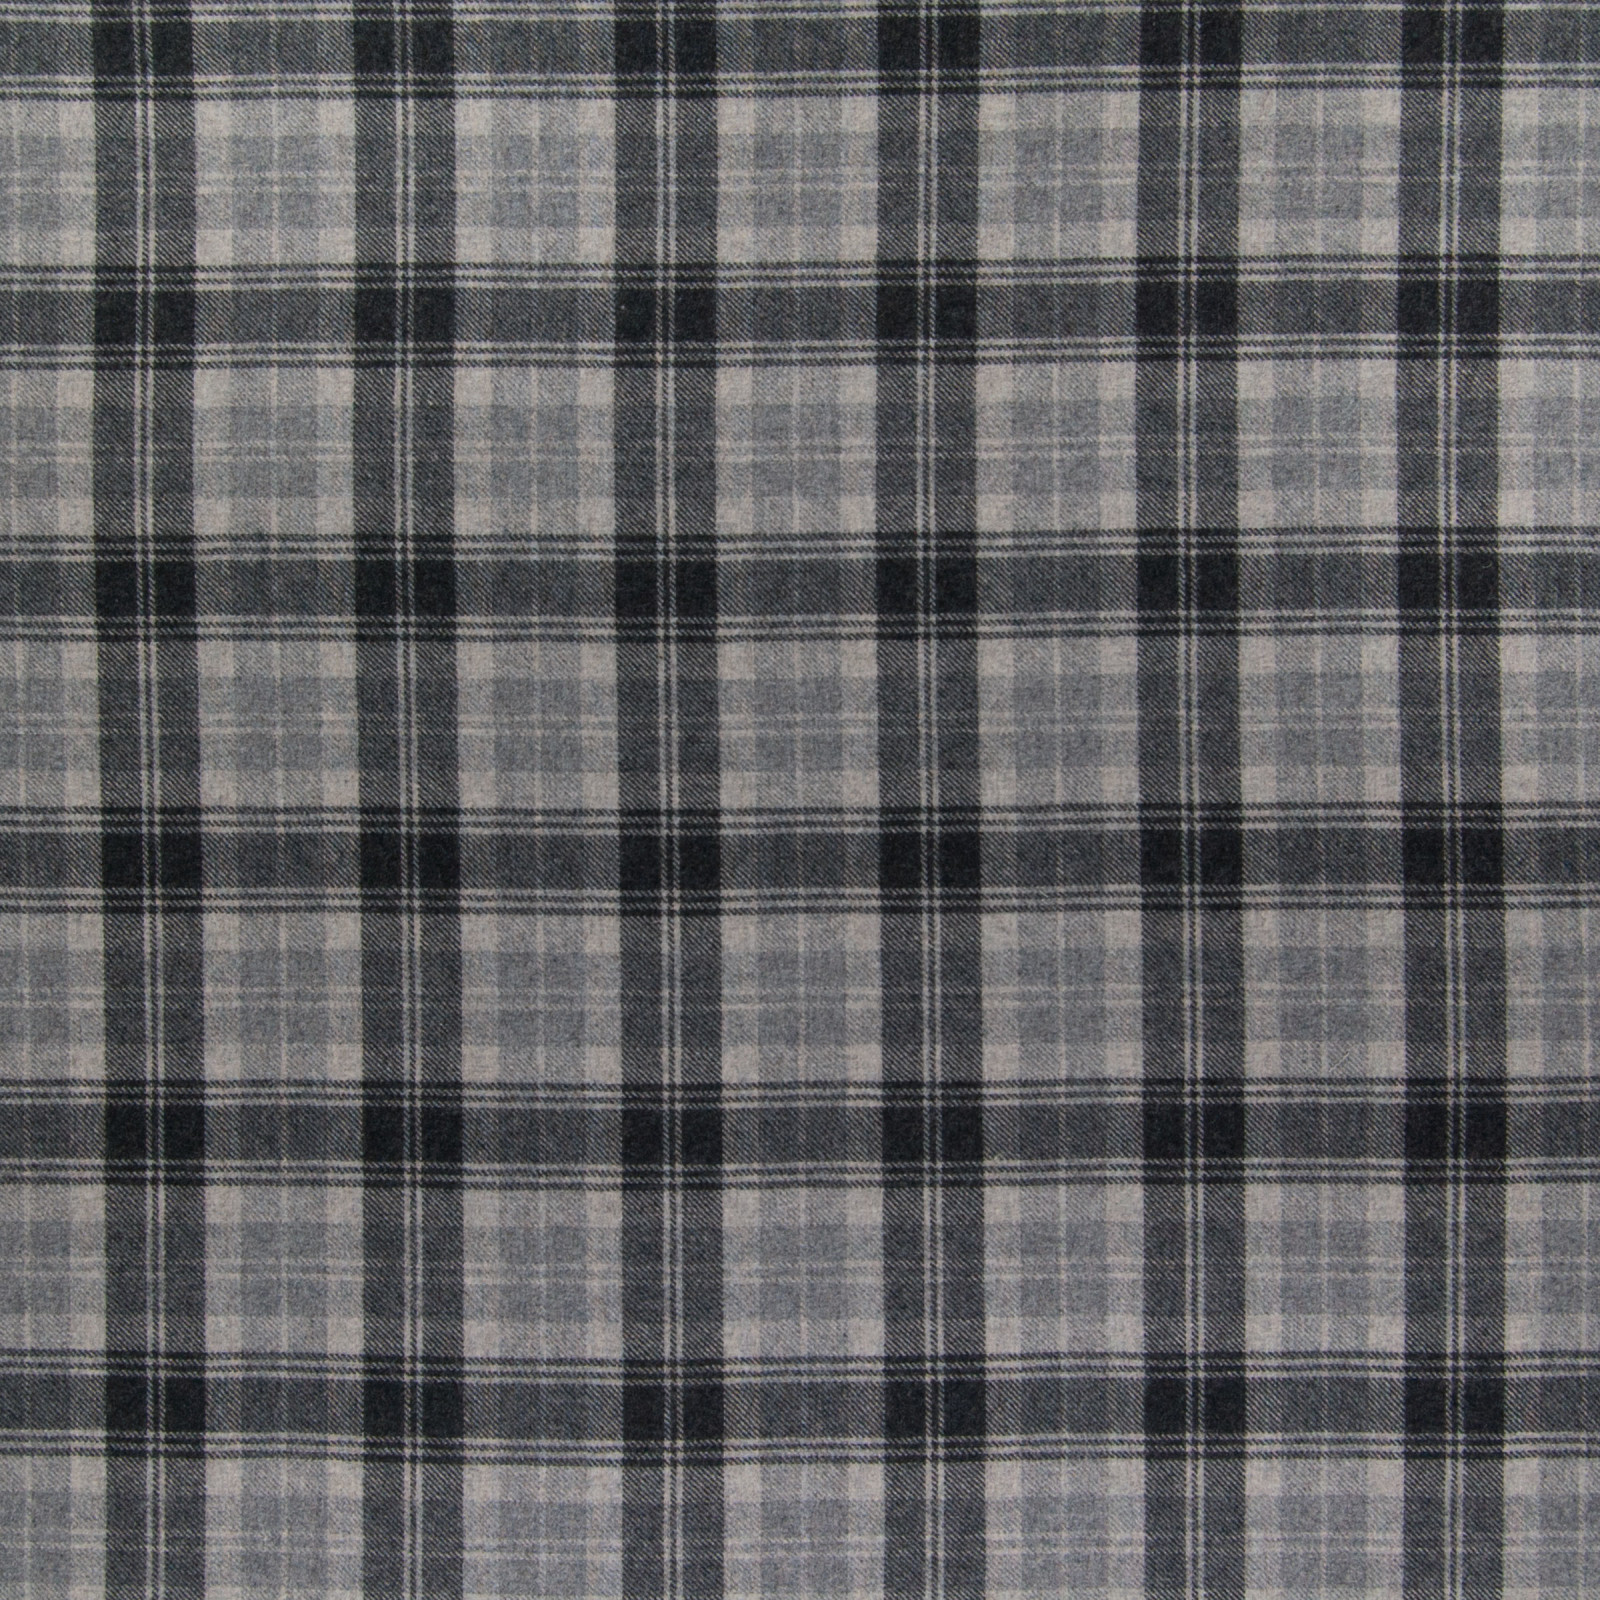 Haze Gray Plaid Woven Upholstery Fabric